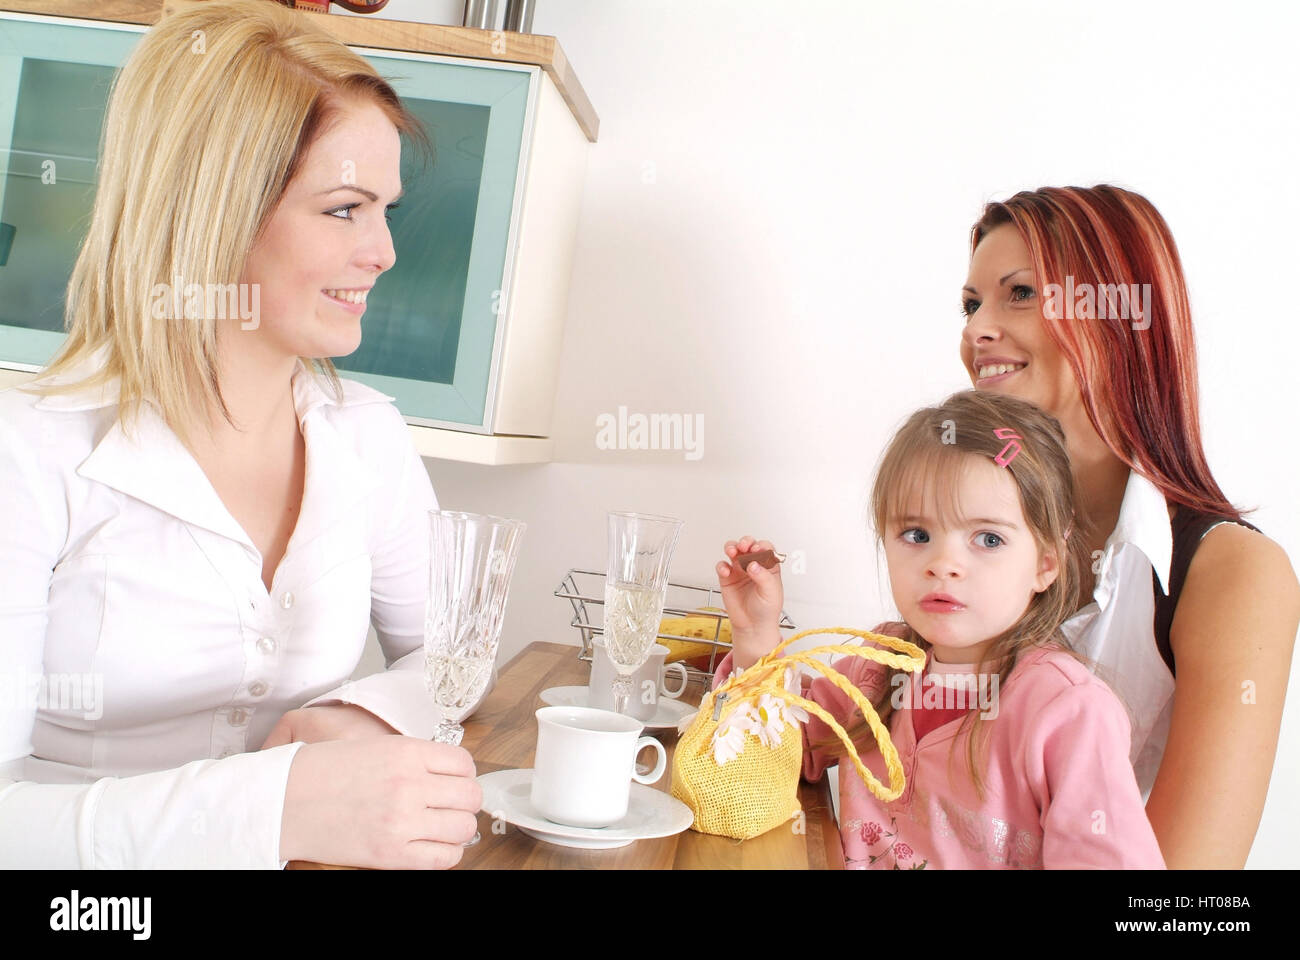 Zwei Freundinnen mit Kind beim gemuetlichen Beisammensitzen an der Kuechenbar - two friends with child get-together - Stock Image